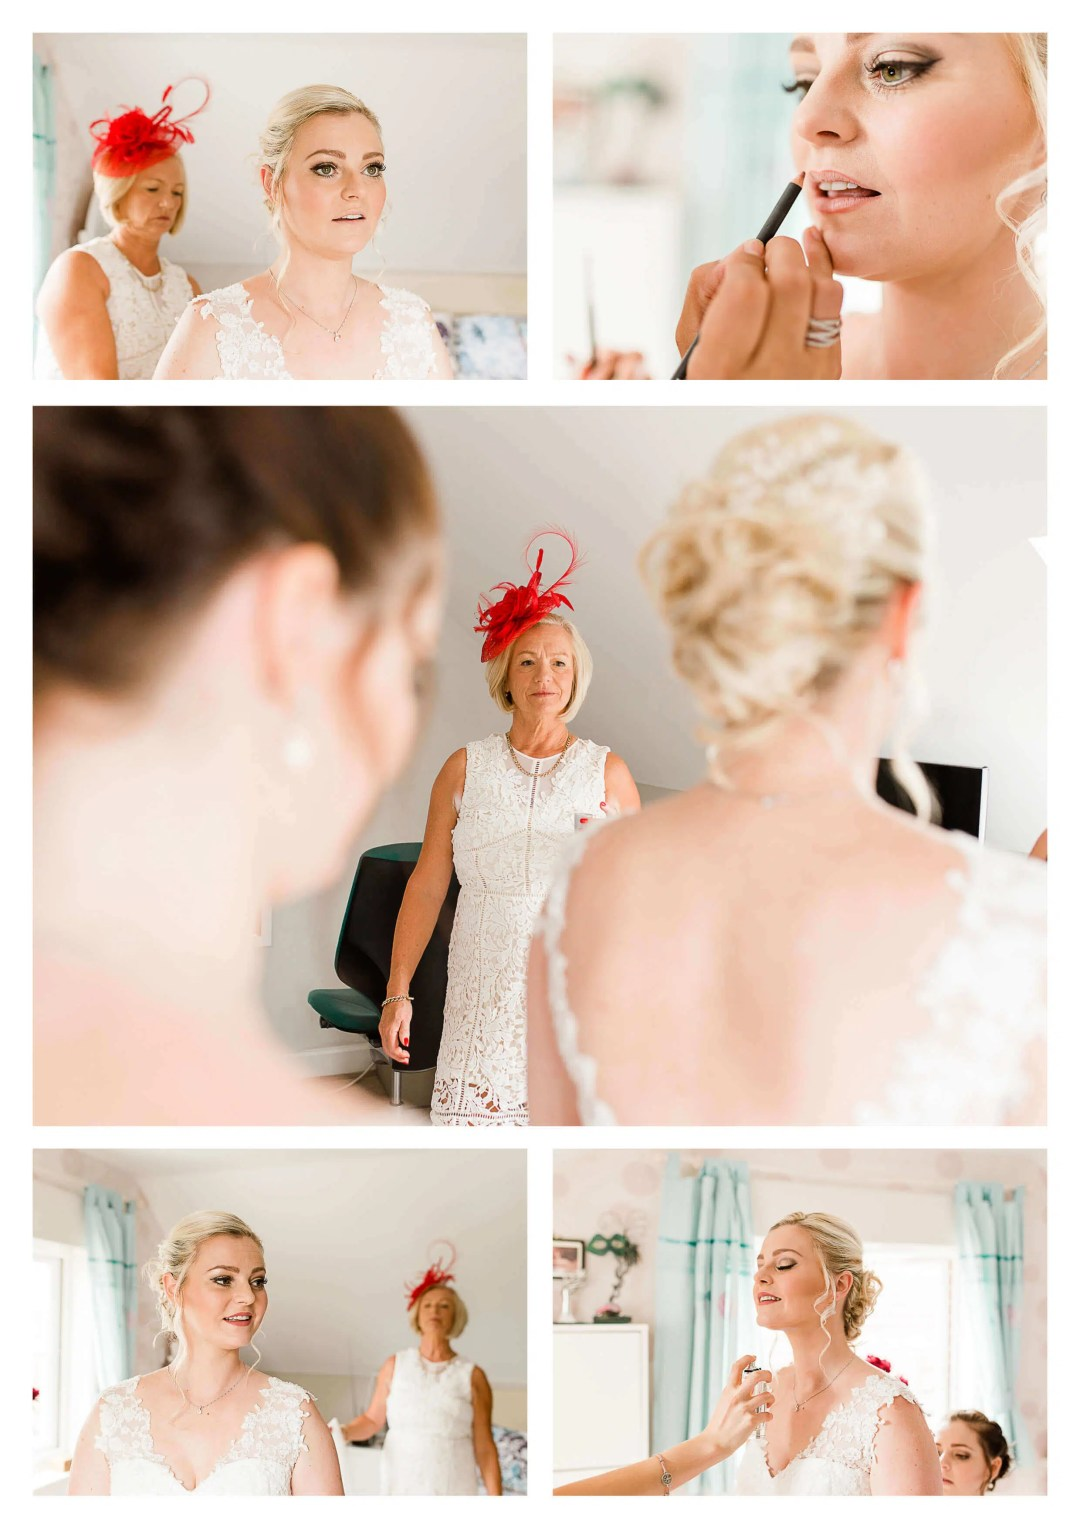 Surrey wedding photography in Horley for bride getting ready photography